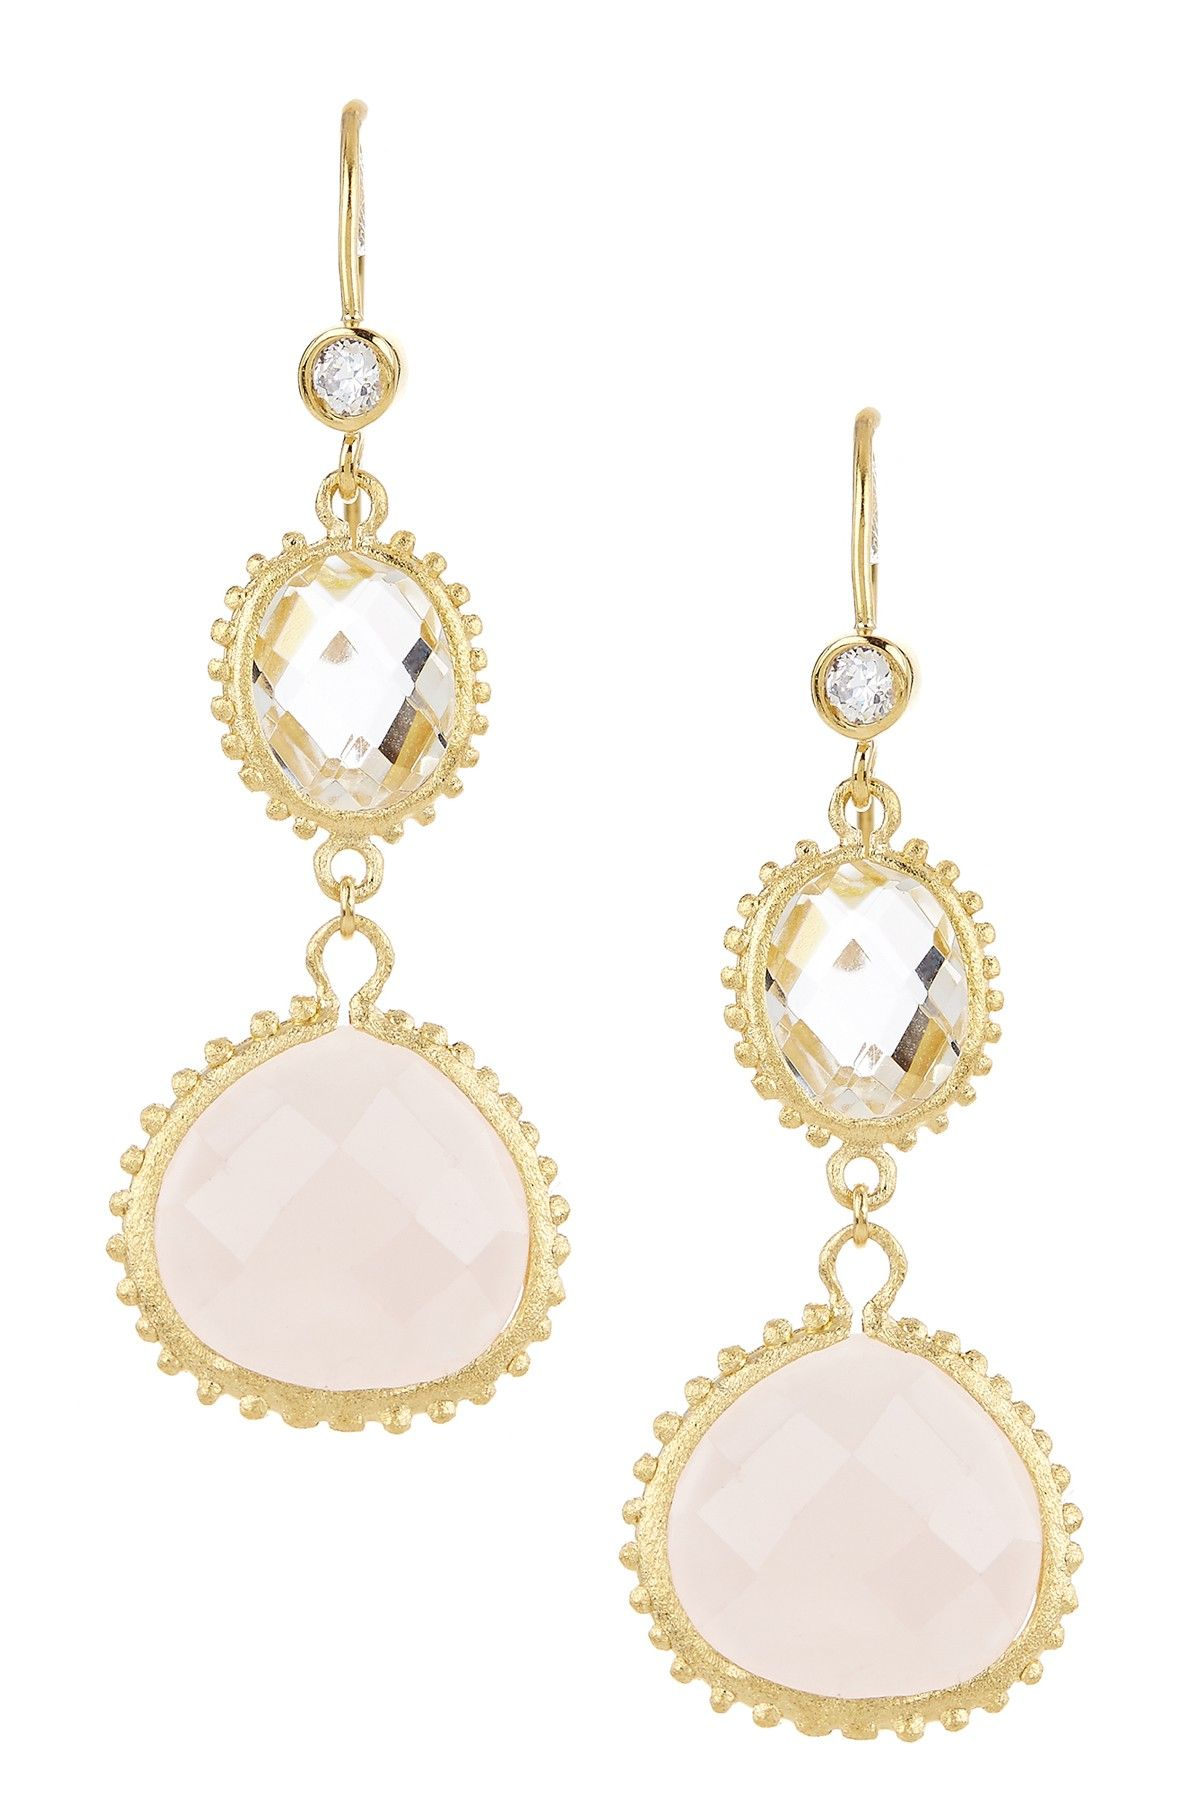 18K Gold Clad Rock Crystal & Rose Quartz Double Dangle Earrings with Simulated Diamond Hook